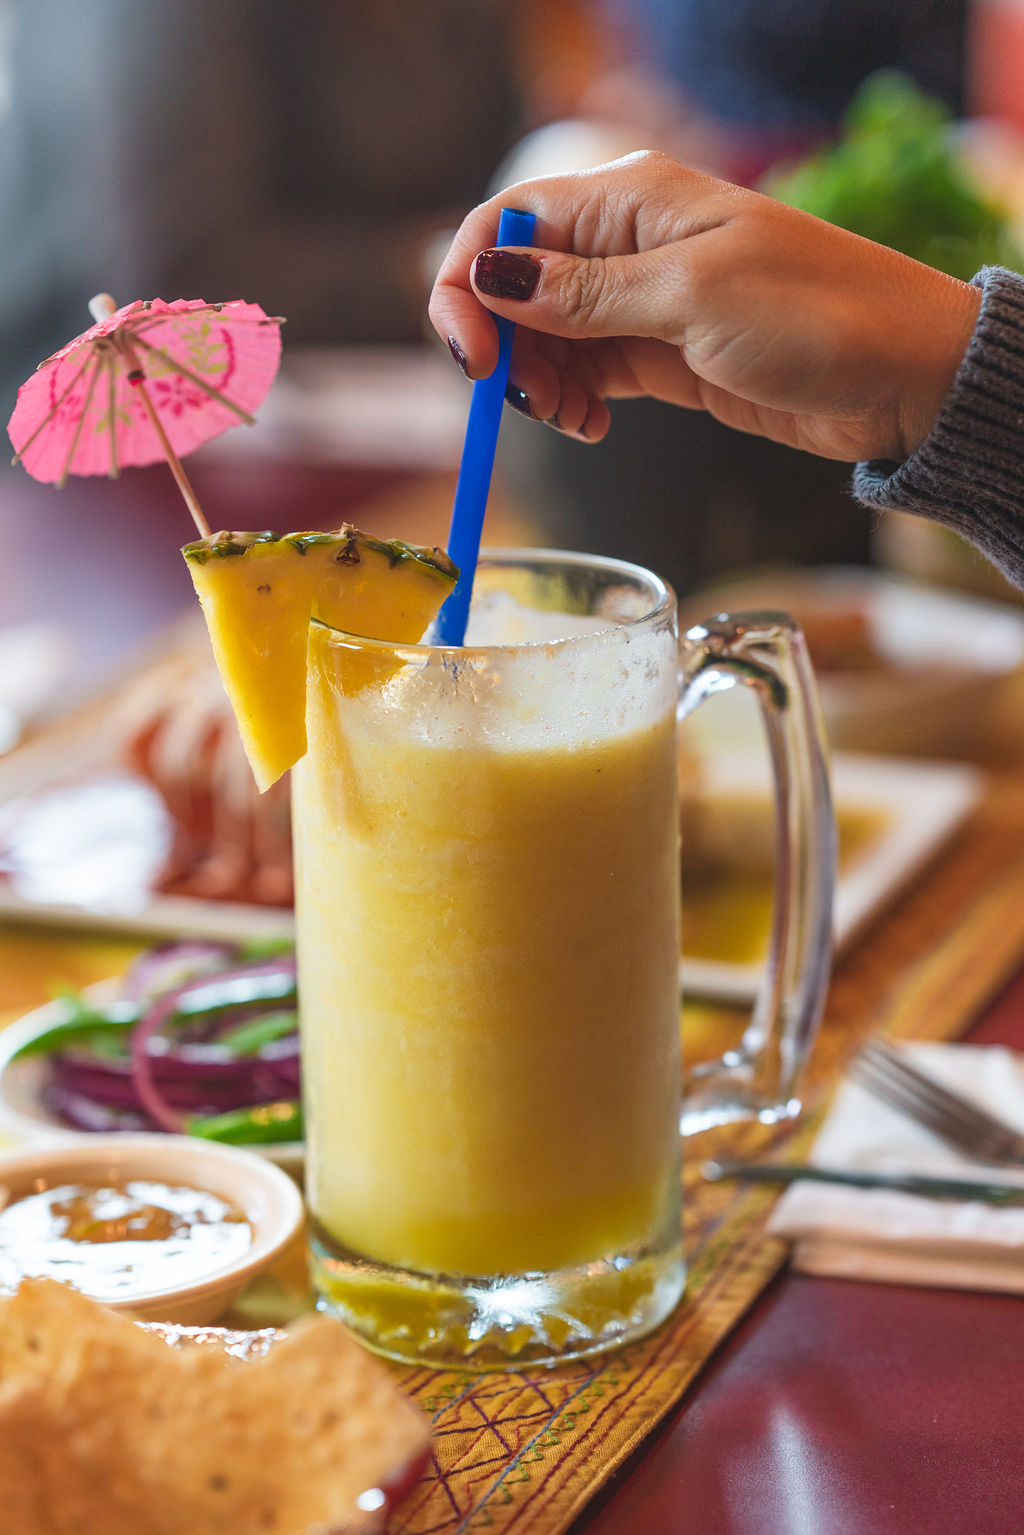 We can Beat the AZ heat - With the help of our unrivaled non-alcoholic specialty drinks, always made from scratch when you order.